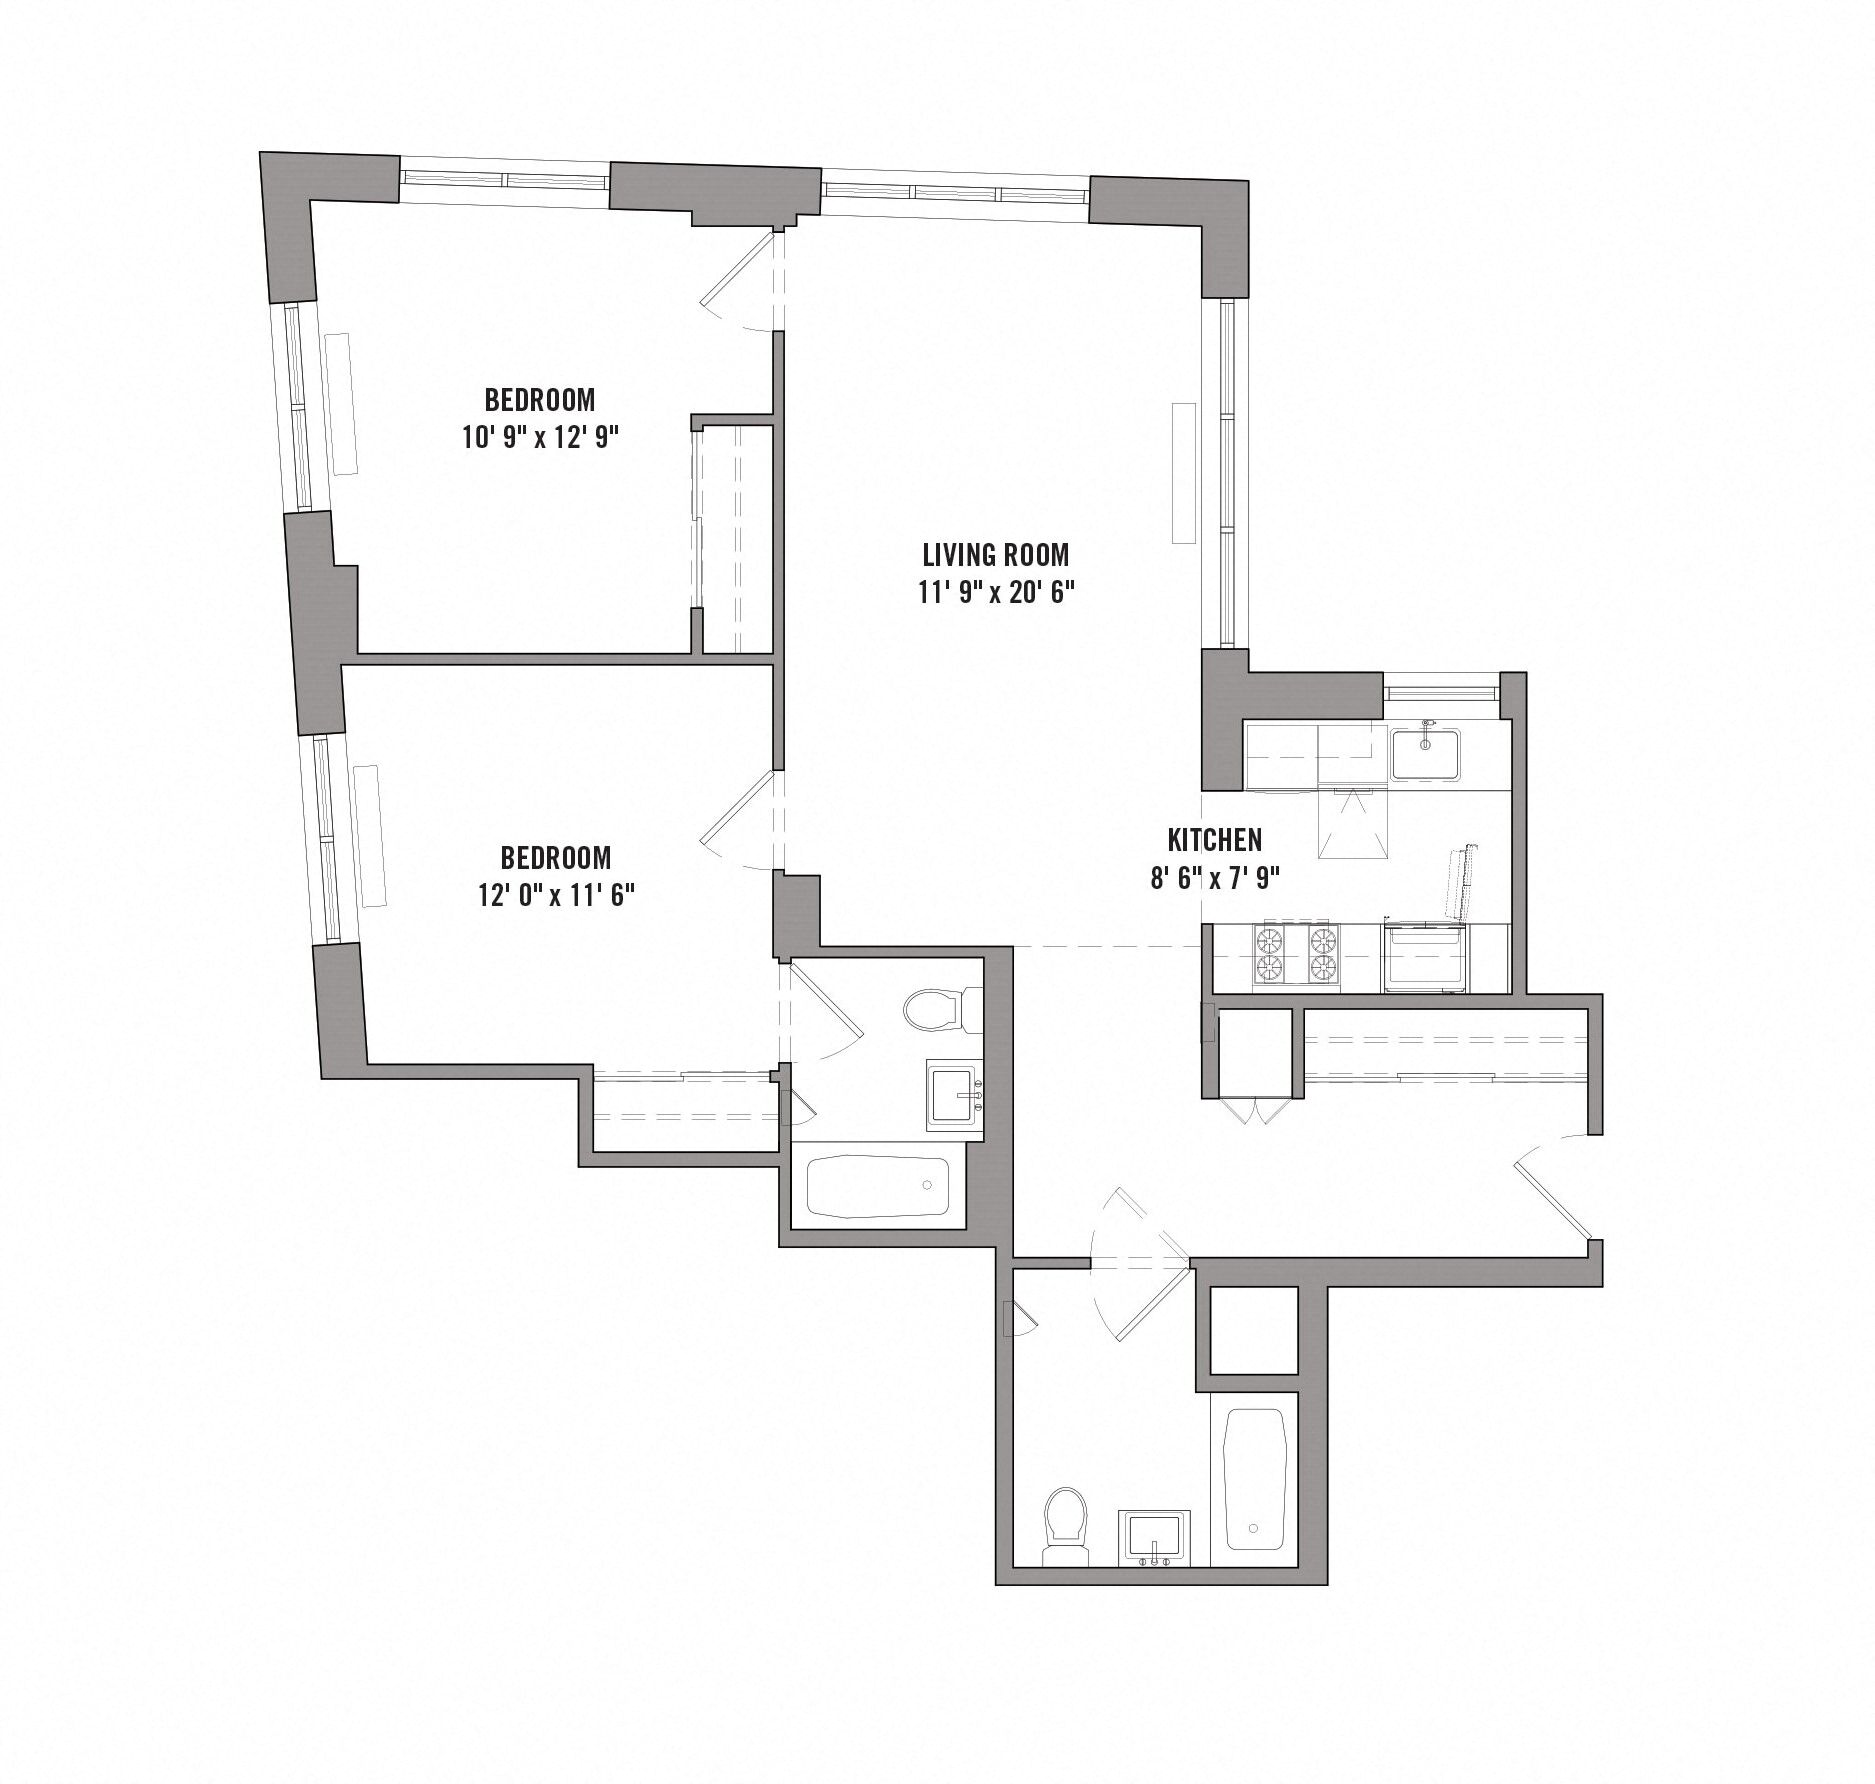 Floor plan diagram for unit F 16-PH. 2 bedrooms, 2 bathrooms, kitchen, and living room.